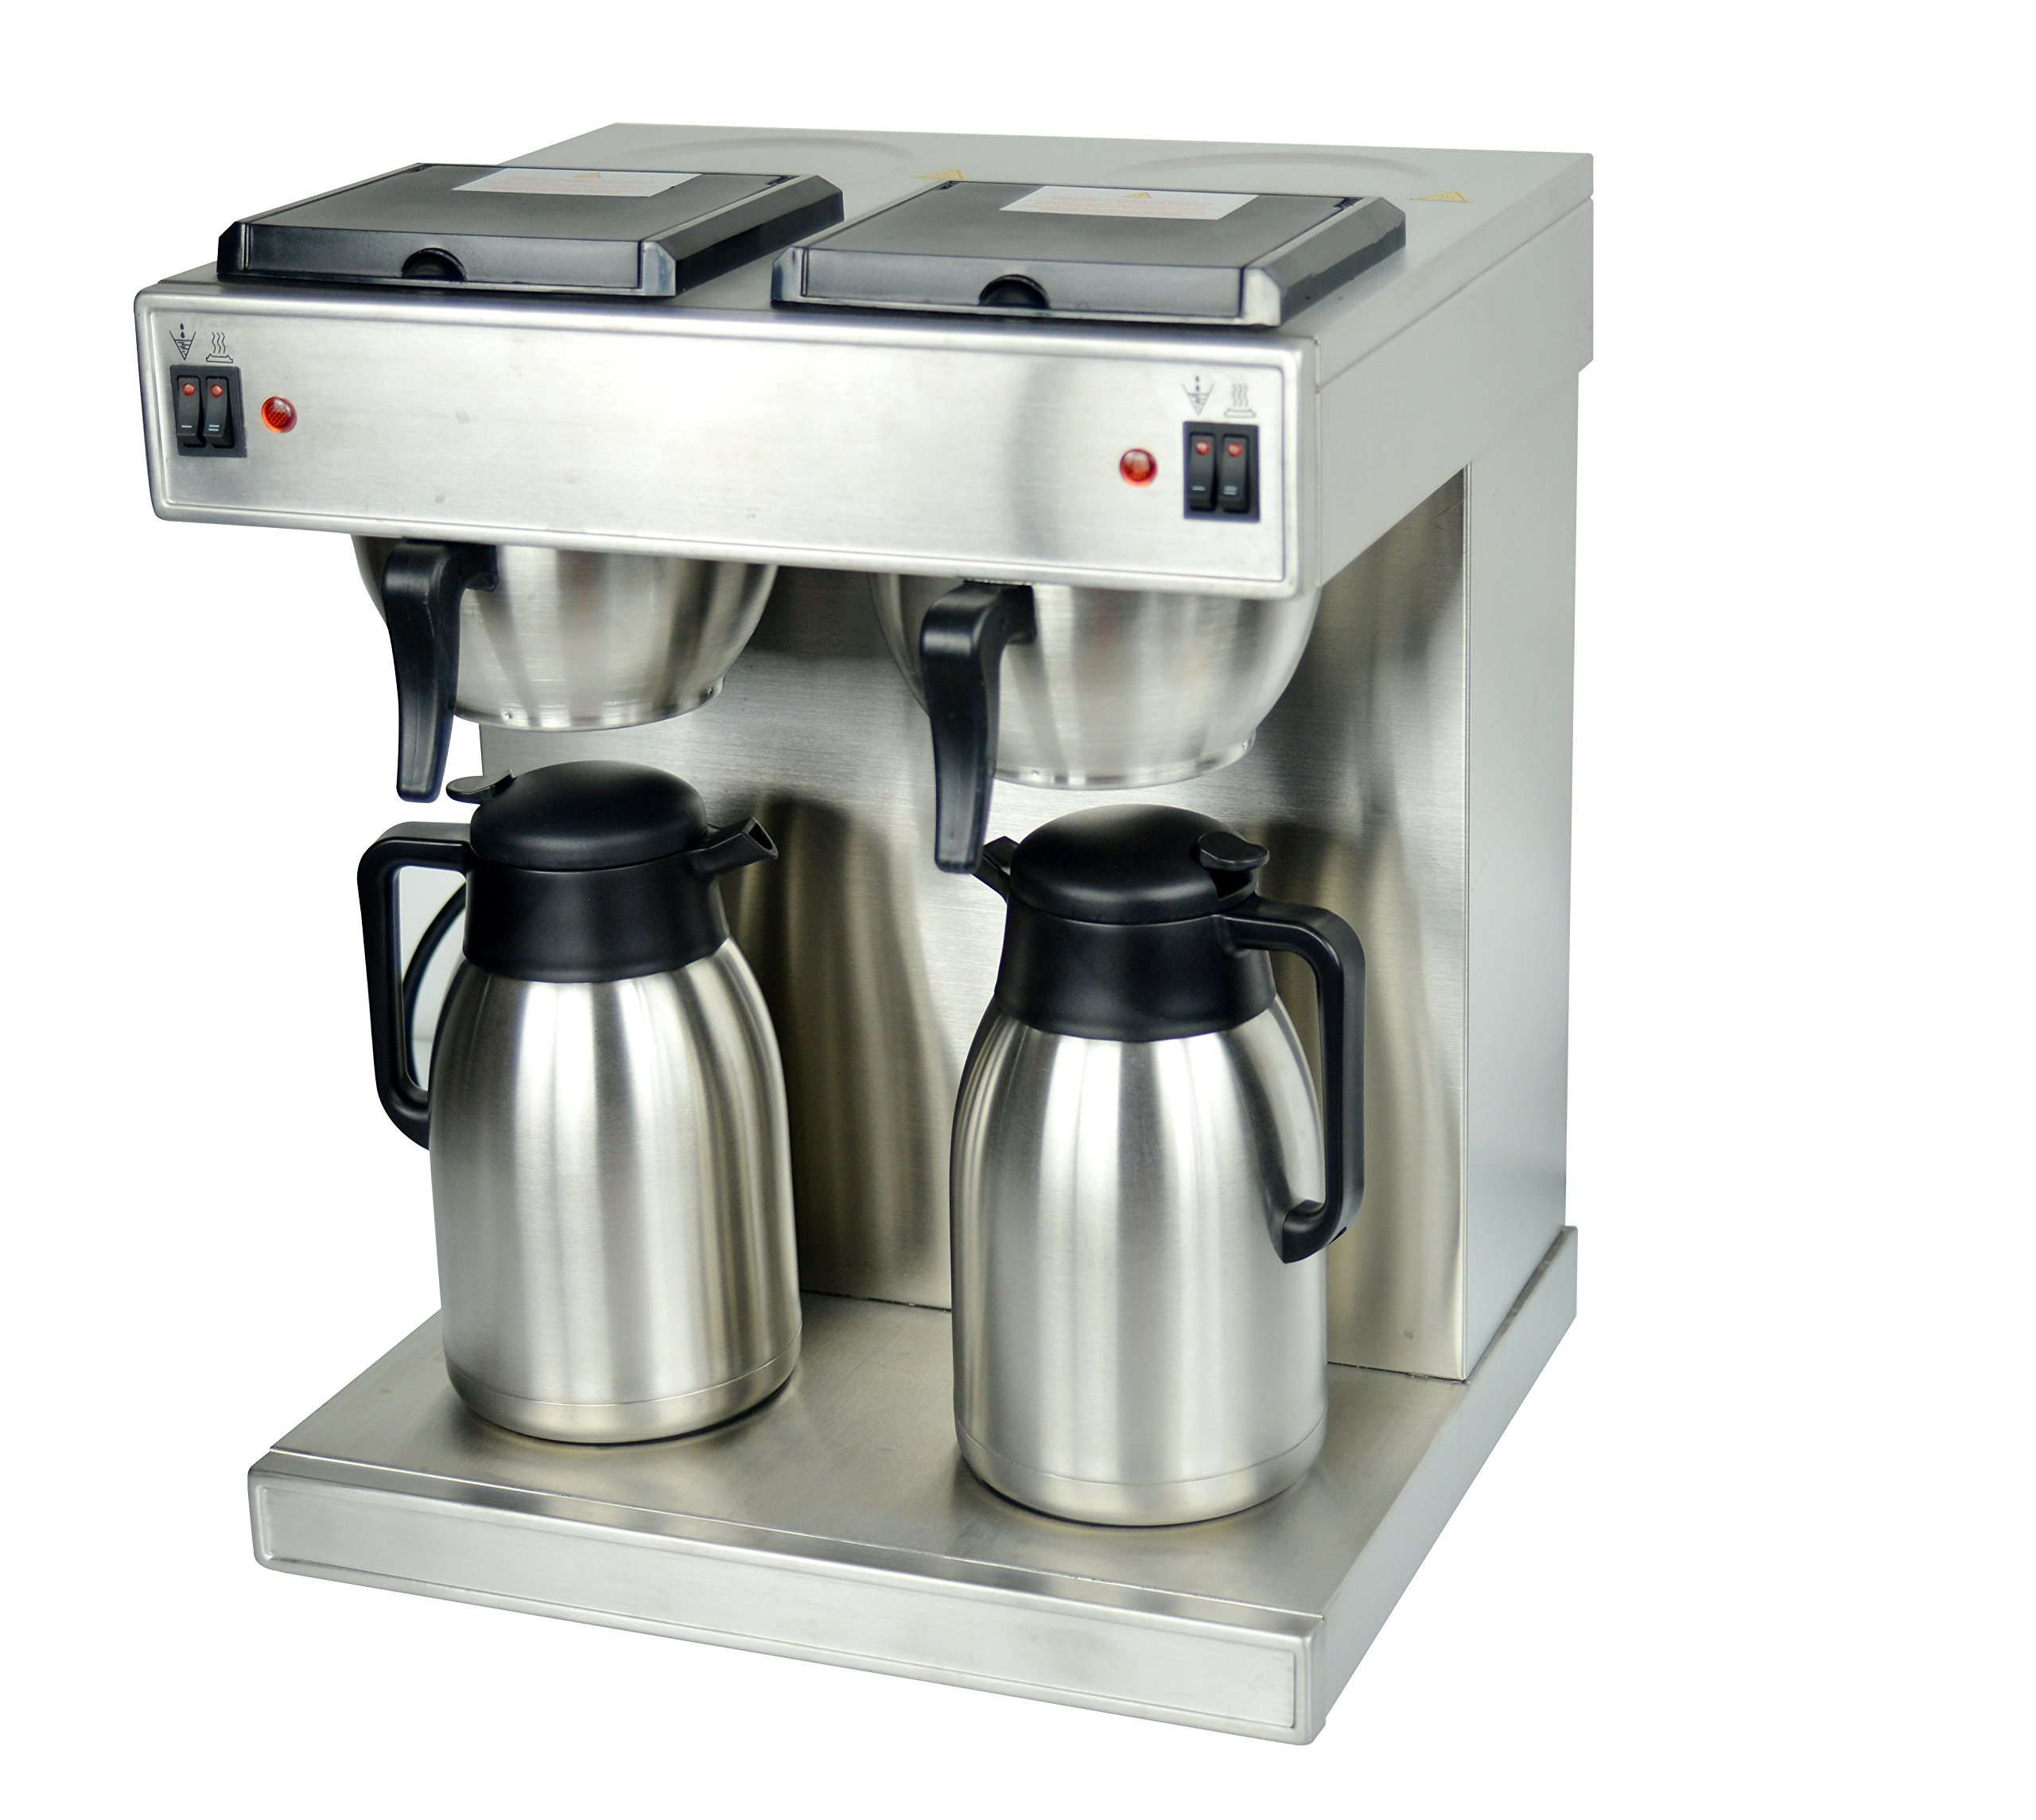 Hakka Commercial Pour Over Air Pot Coffee Brewer and Coffee Maker (220V/60Hz,Plug Exchangeable) by HAKKA FOOD PROCESSING (Image #1)